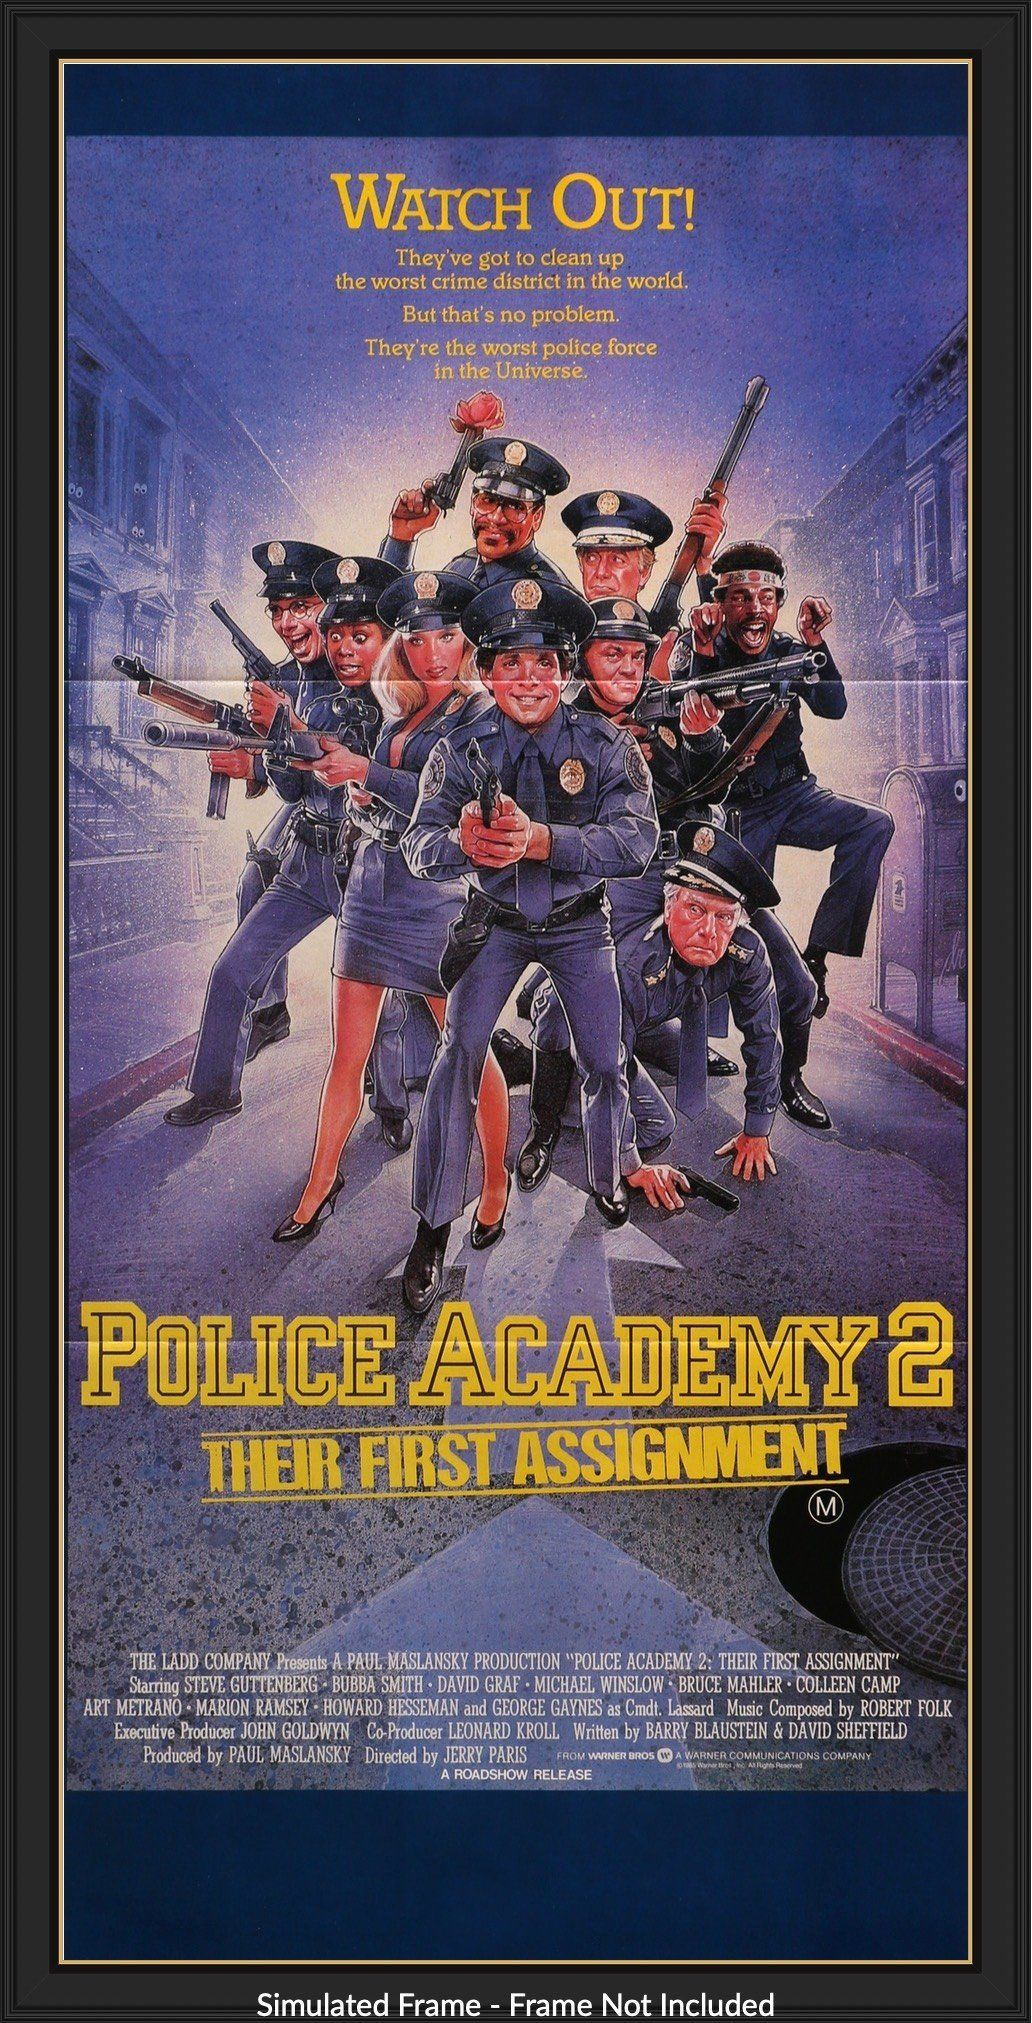 Police Academy 2 Their First Assignment 1985 Police Academy Movie Posters Minimalist Film Posters Vintage